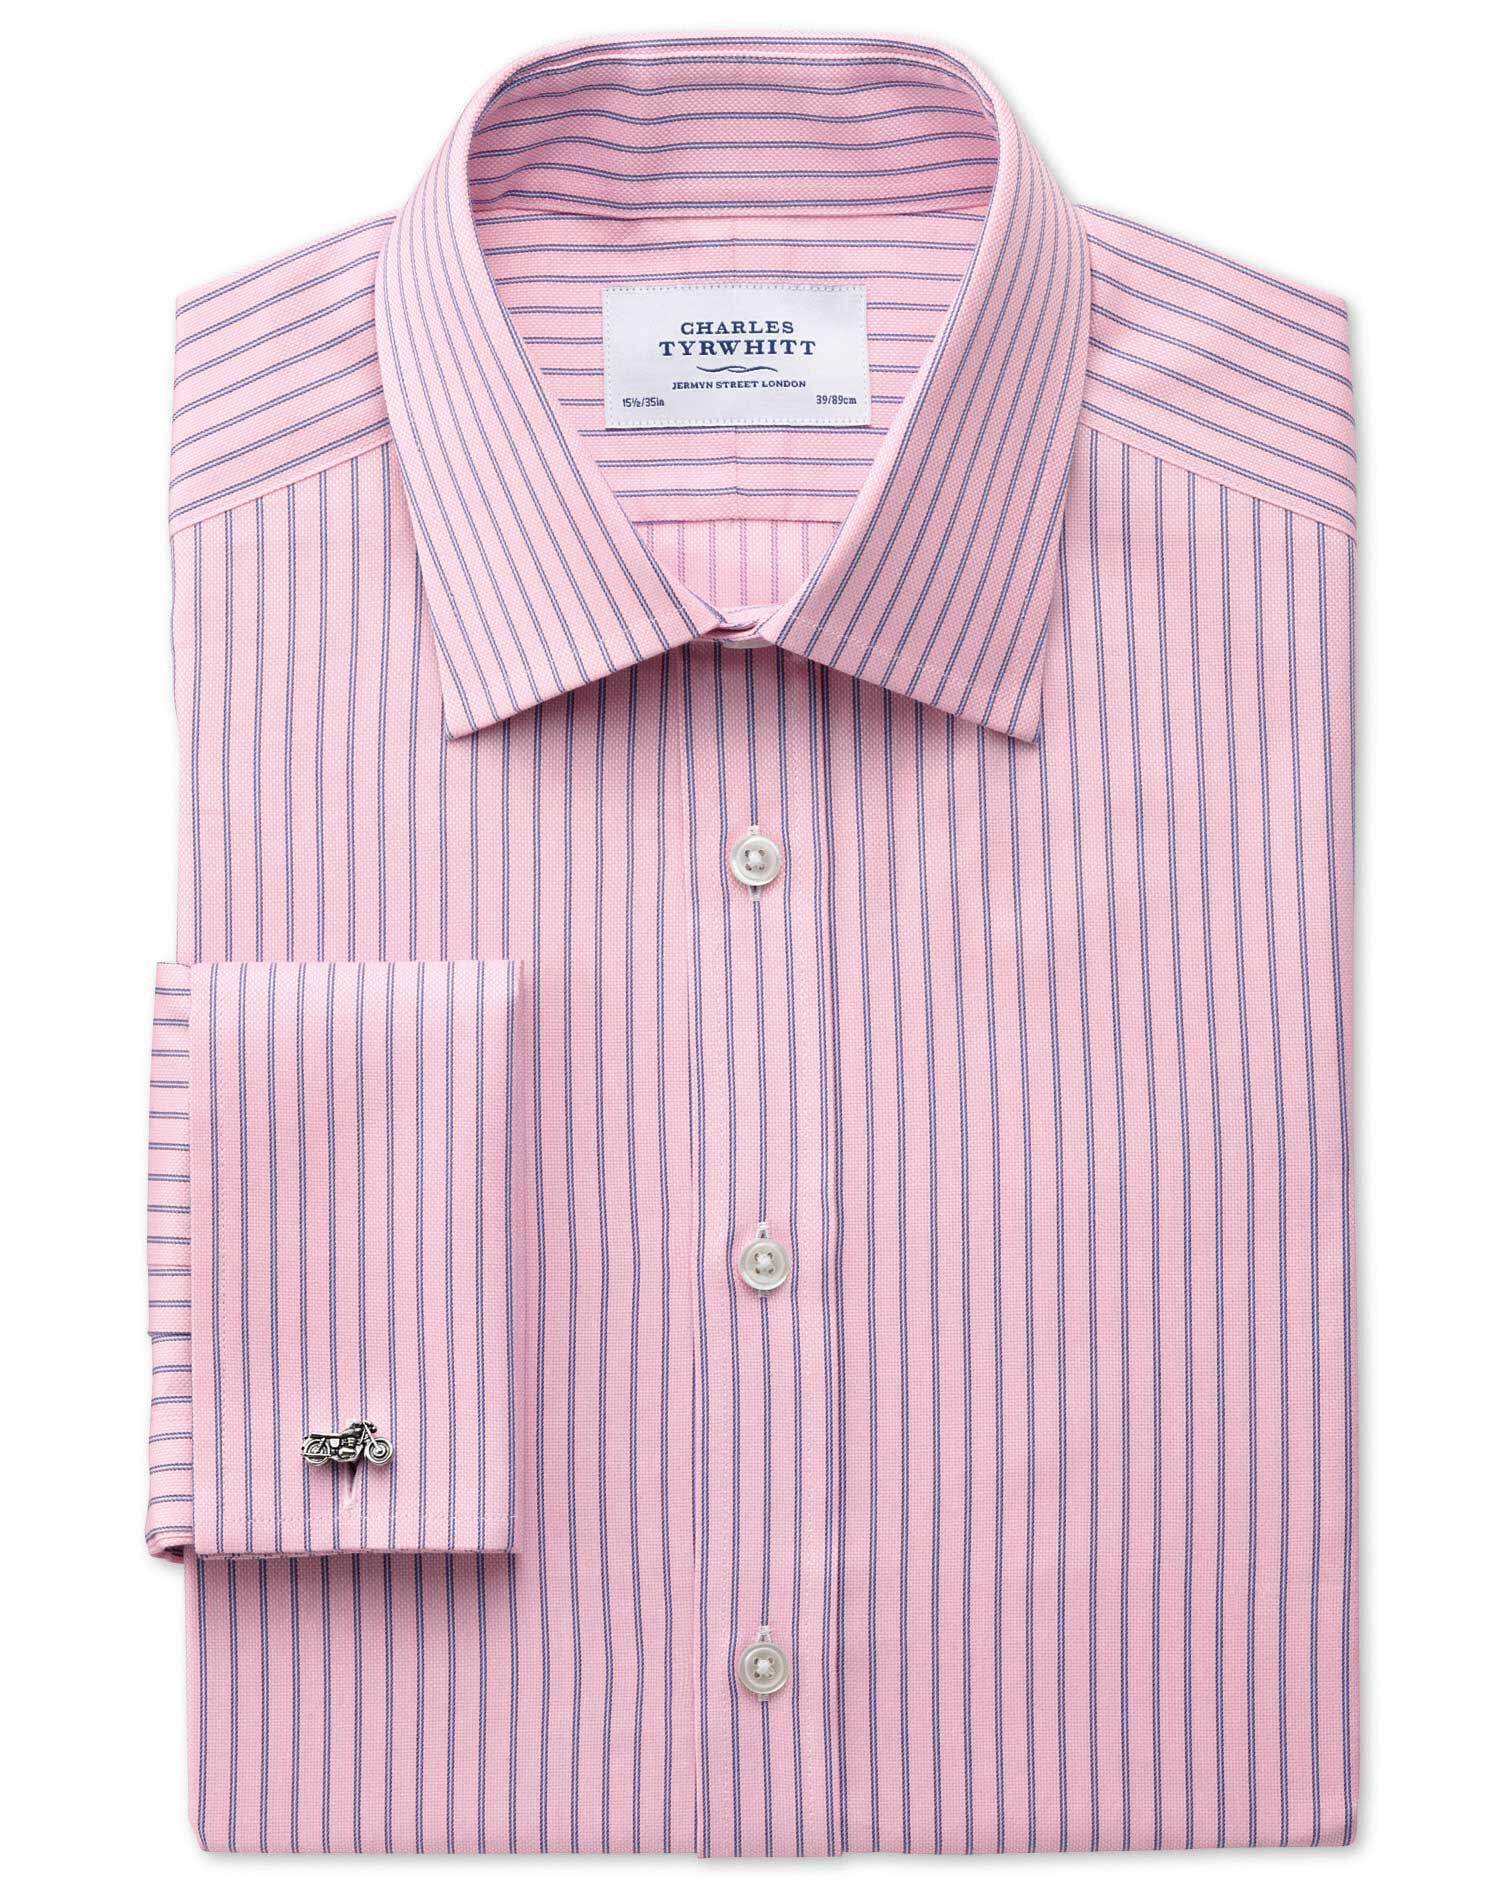 Classic Fit Egyptian Cotton Textured Stripe Pink Formal Shirt Single Cuff Size 15.5/36 by Charles Ty